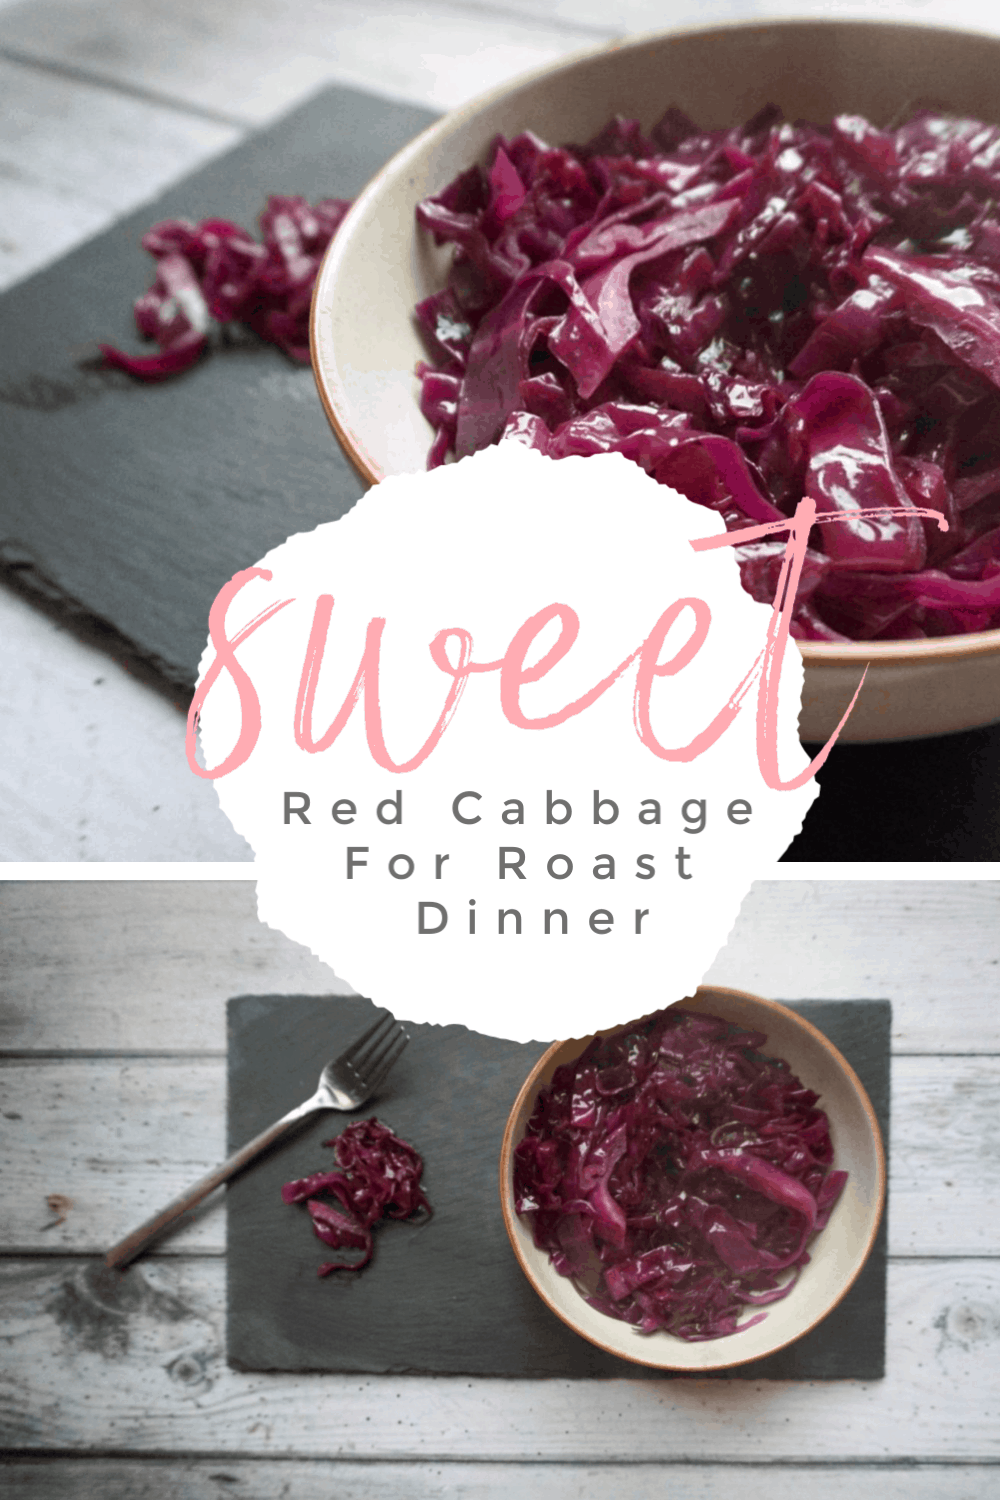 How To Make Red Cabbage For Roast Dinner #Sweetredcabbage #vegetablesforroastdinner #redcabbage #Roastdinner